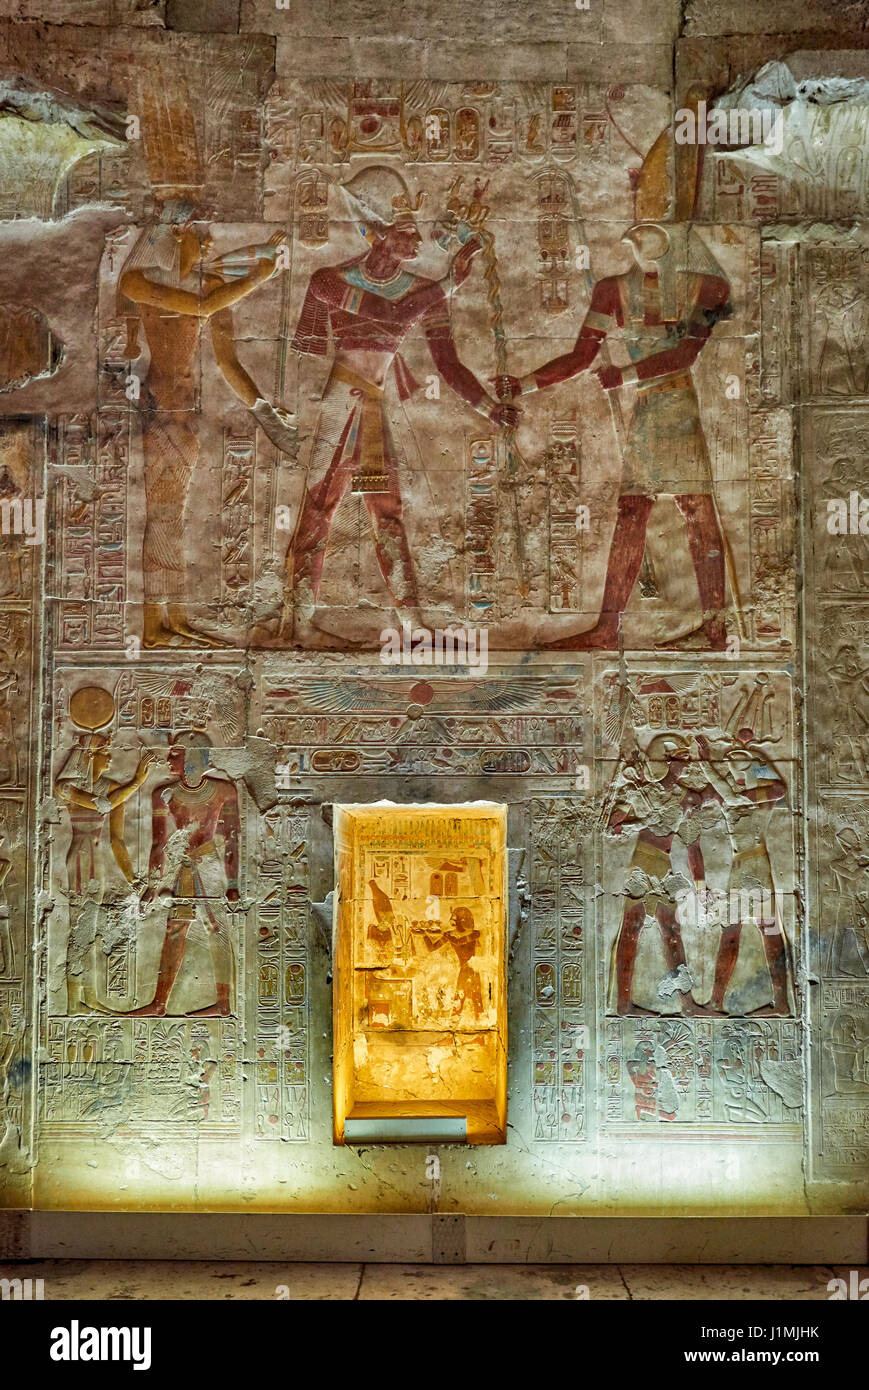 colorful stone carved reliefs in sanctuaries behind second Hypostyle Hall inside Temple of Seti I , Abydos, Egypt, - Stock Image